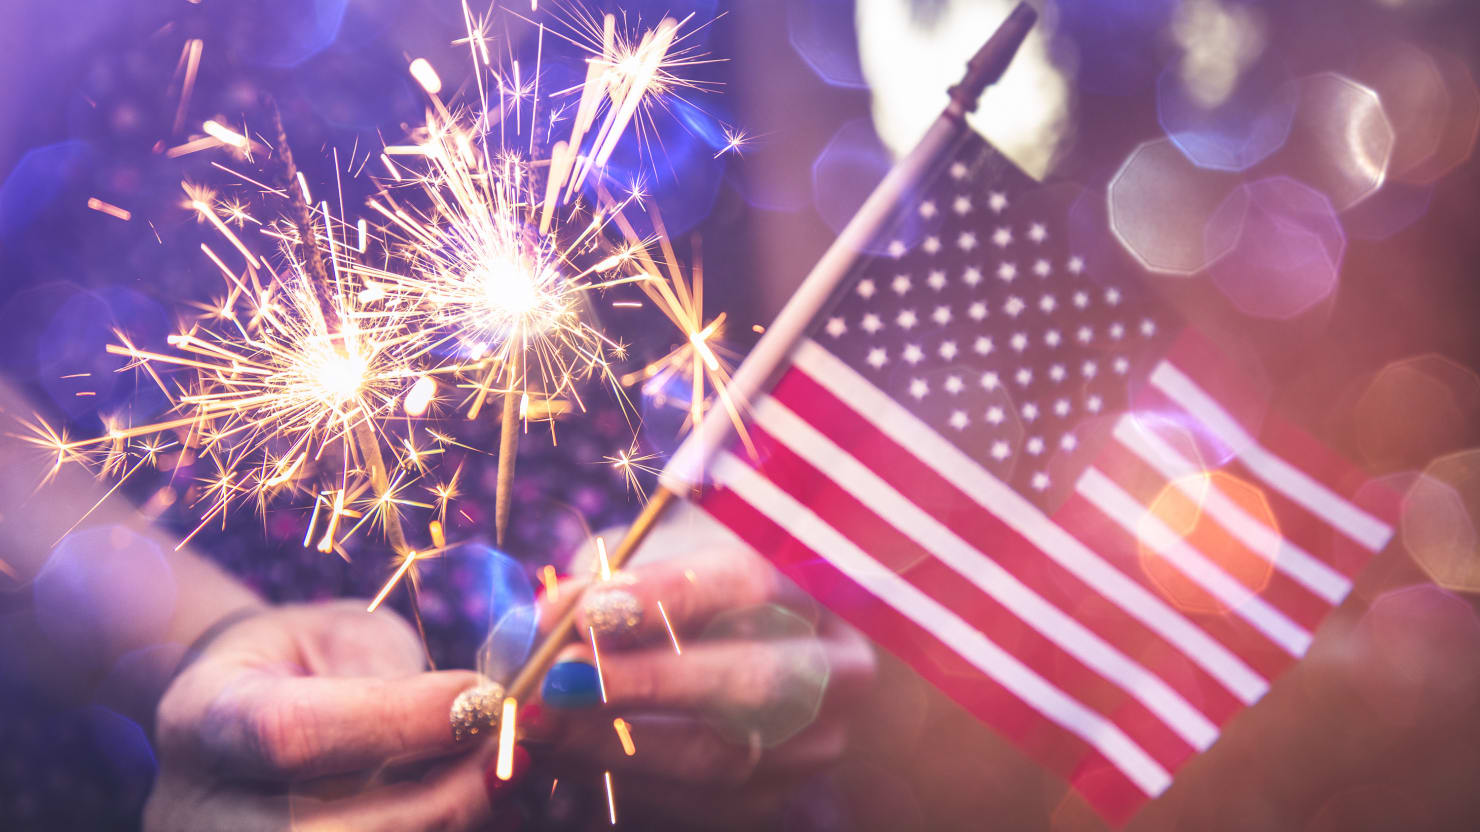 The Quiet Fourth of July